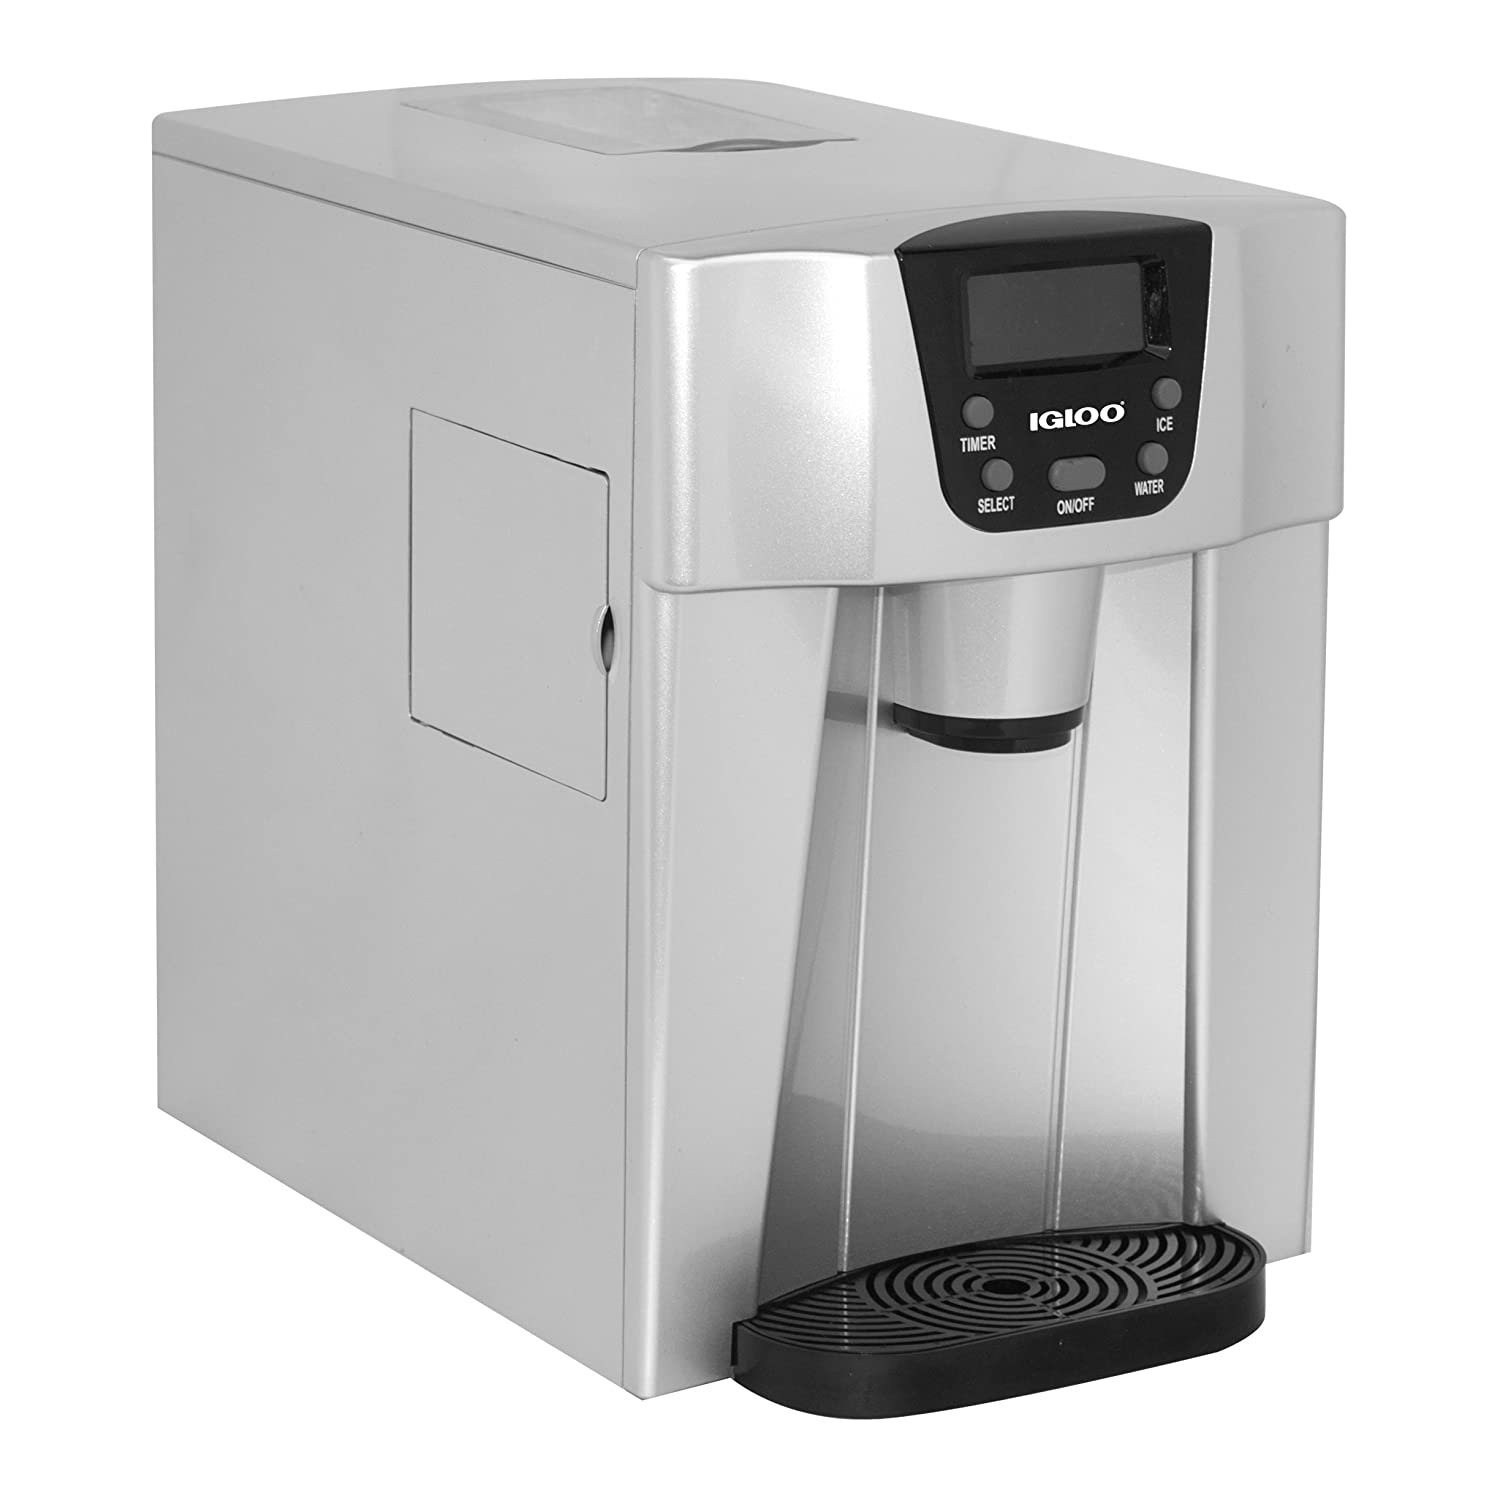 Igloo ICE227-Silver Compact Ice Maker and Water Dispenser, Silver Curtis International LTD